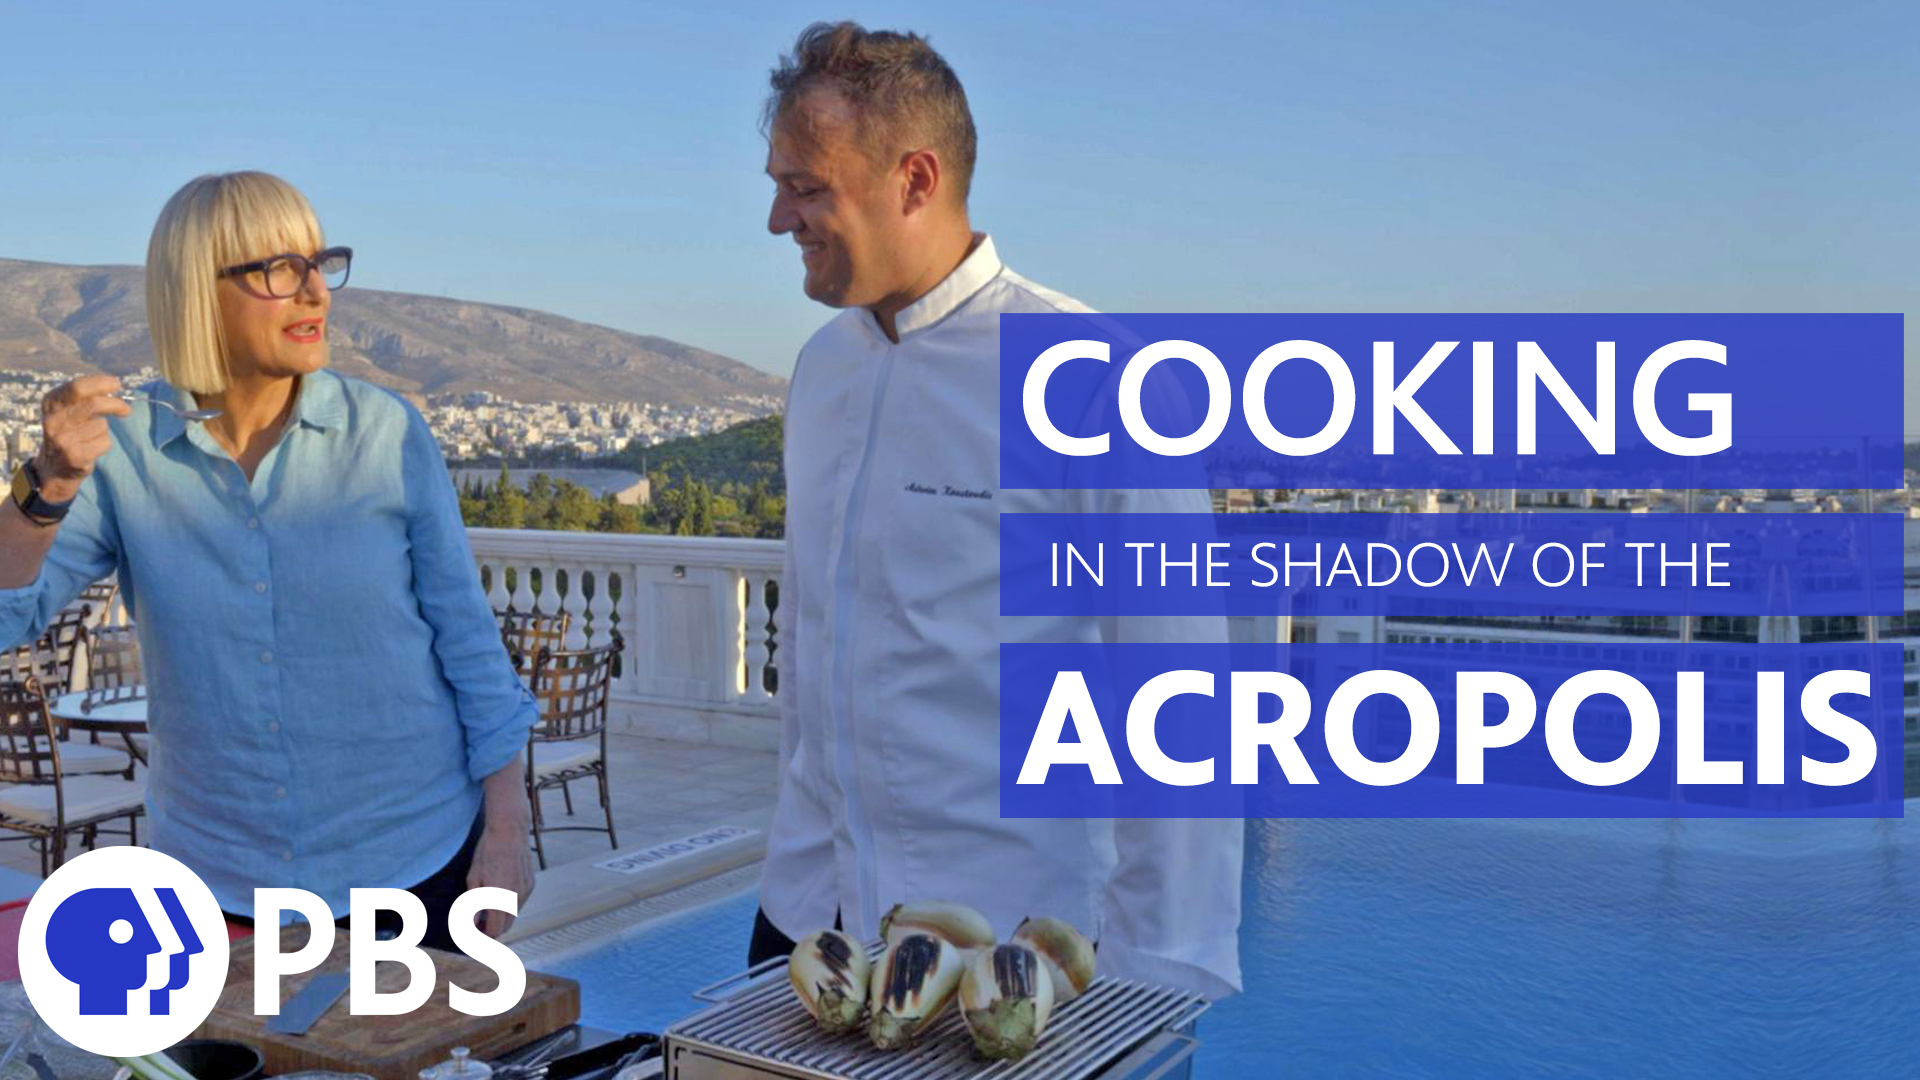 Life of Loi: Cooking In the Shadow of the Acropolis